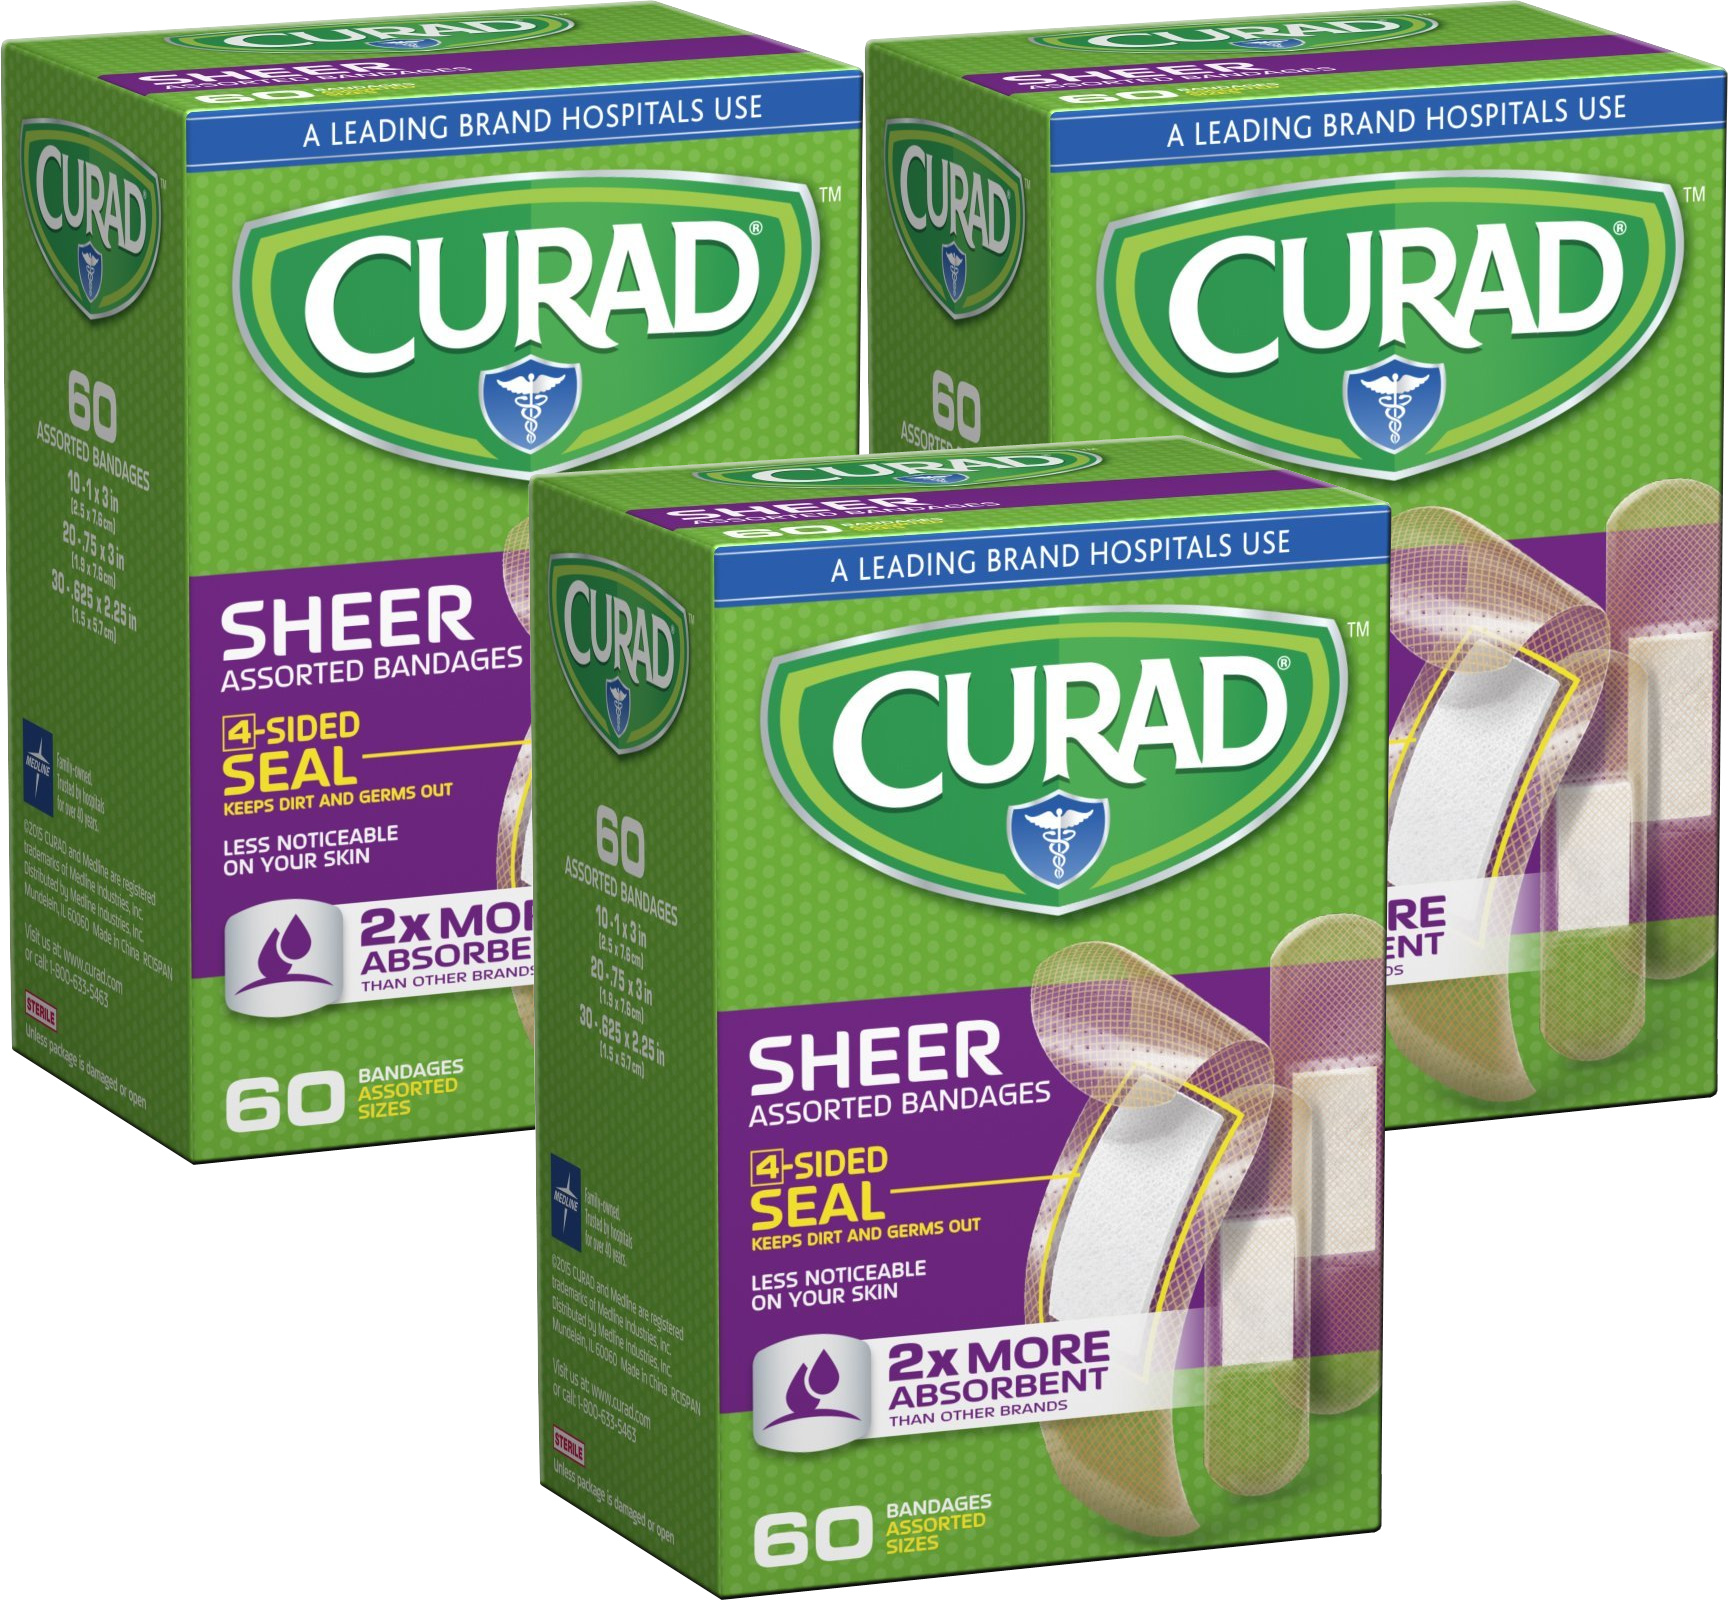 Curad Sheer Bandages, Assorted Sizes, 3 Packs of 60, 180 Bandages Total